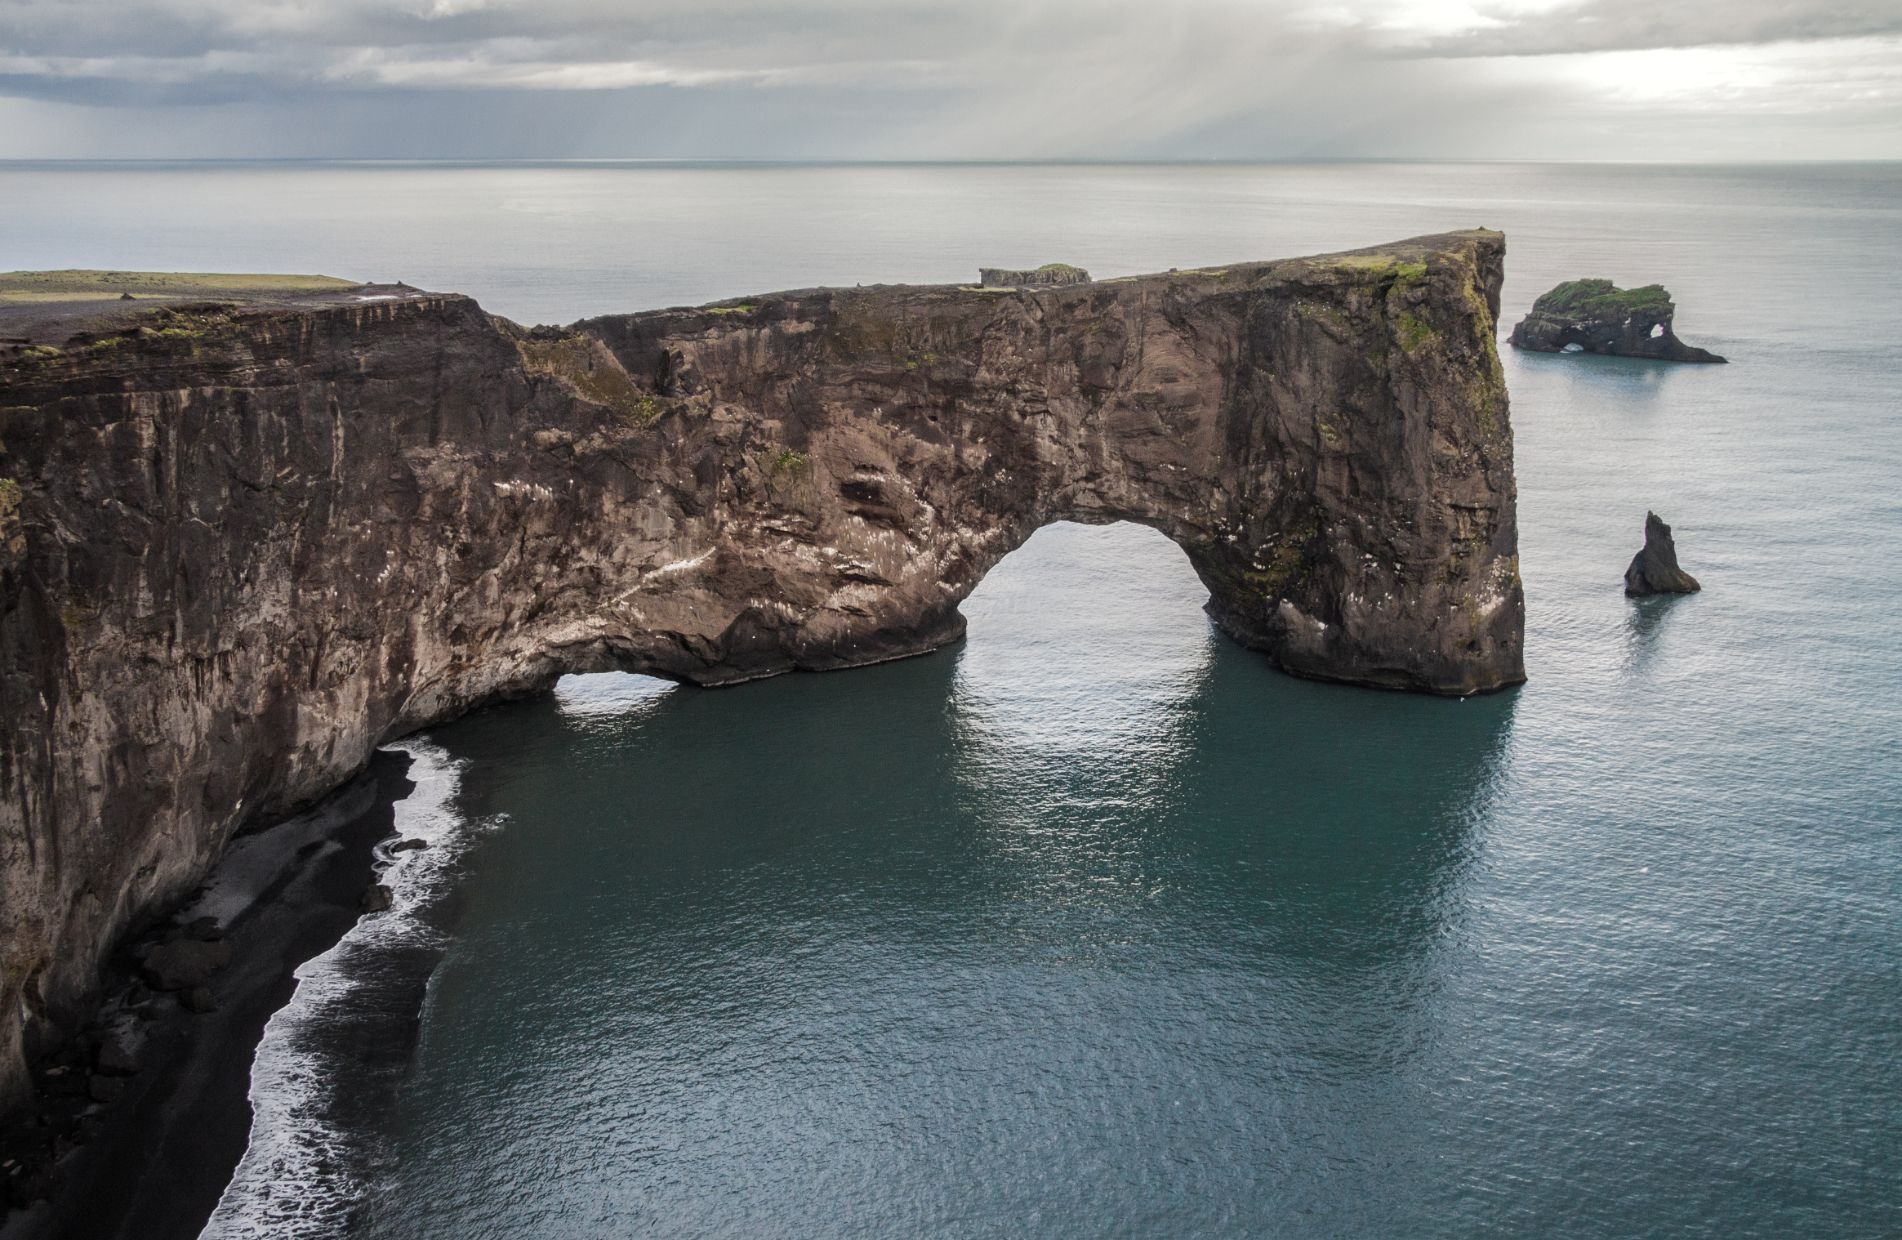 Dyrholaey Peninsula with view of ocean in Iceland - stop in 24 hour Iceland itinerary